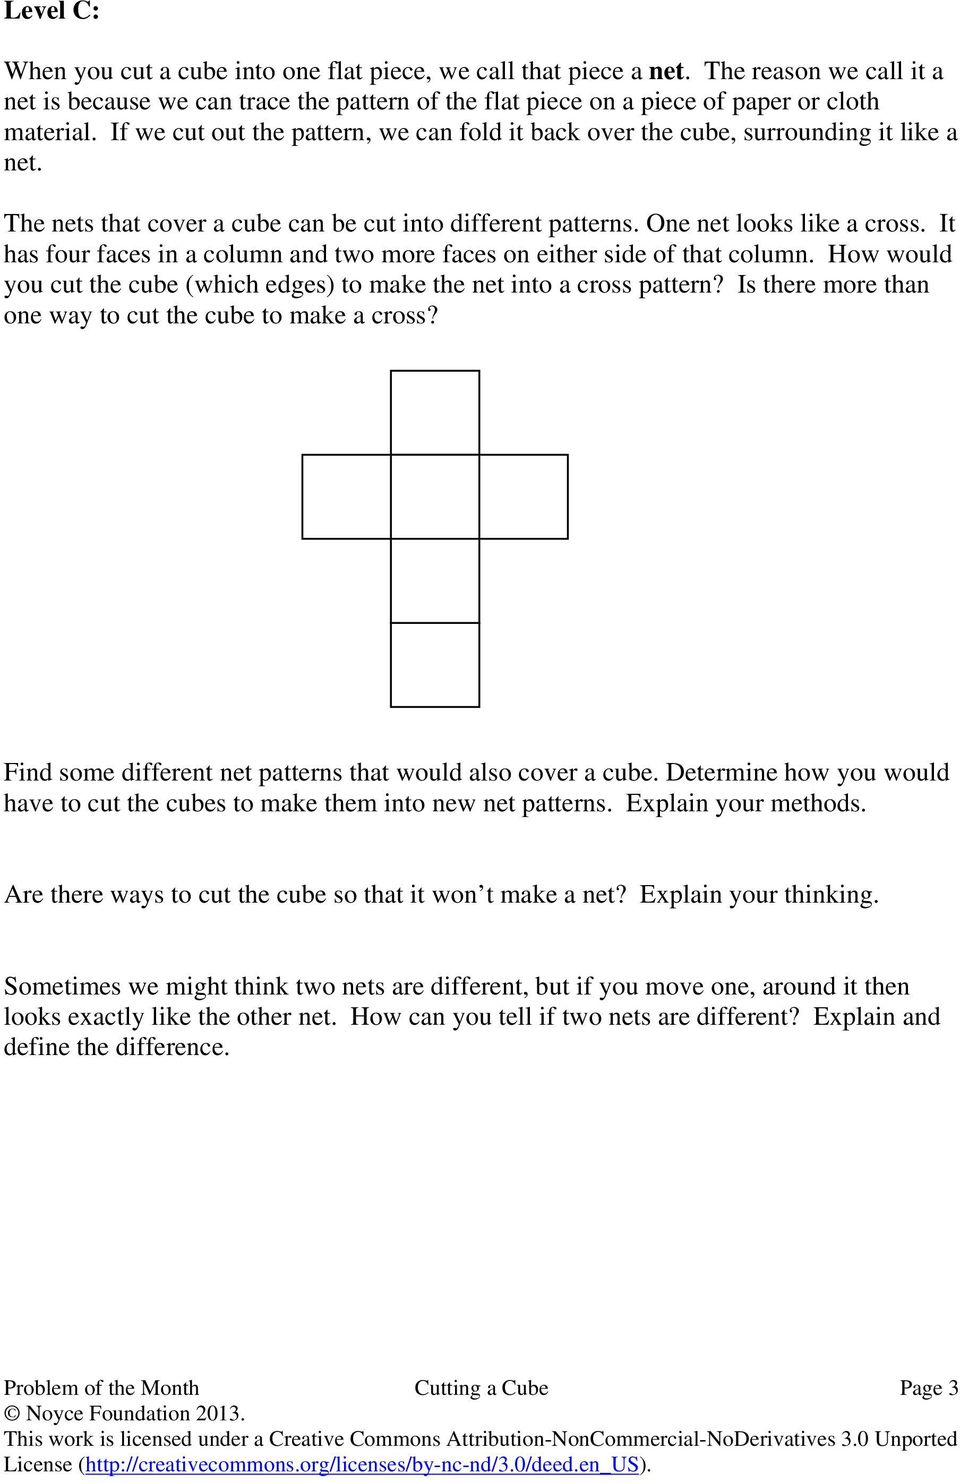 It has four faces in a column and two more faces on either side of that column. How would you cut the cube (which edges) to make the net into a cross pattern?